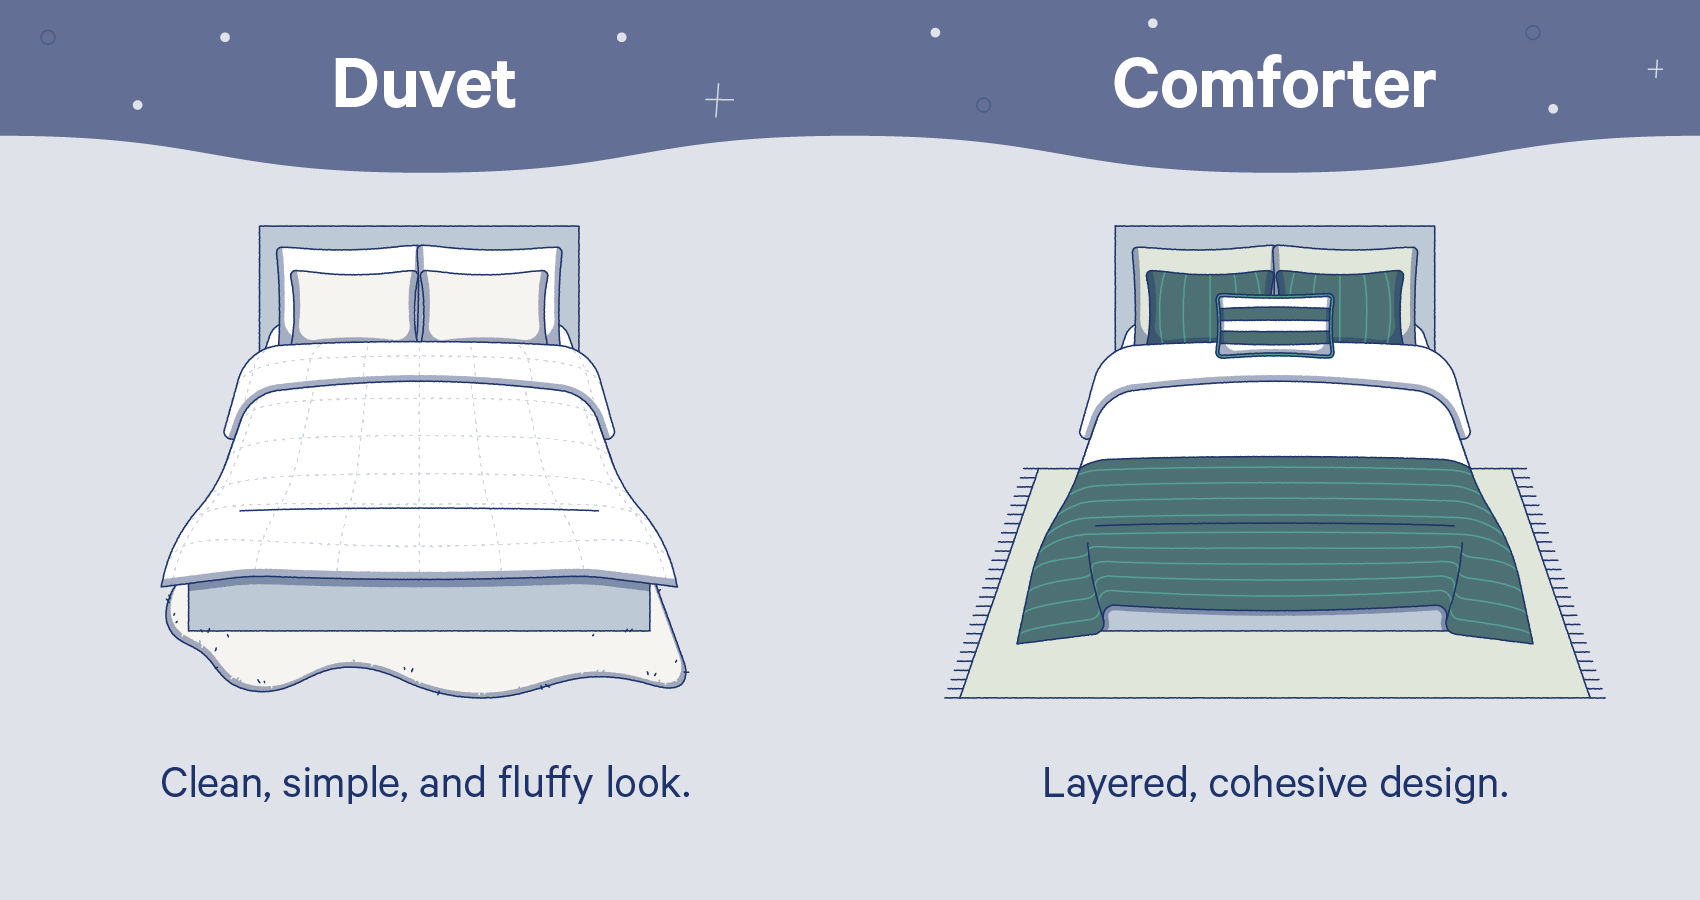 Duvets are clean and simple and comforters are layered and cohesive.